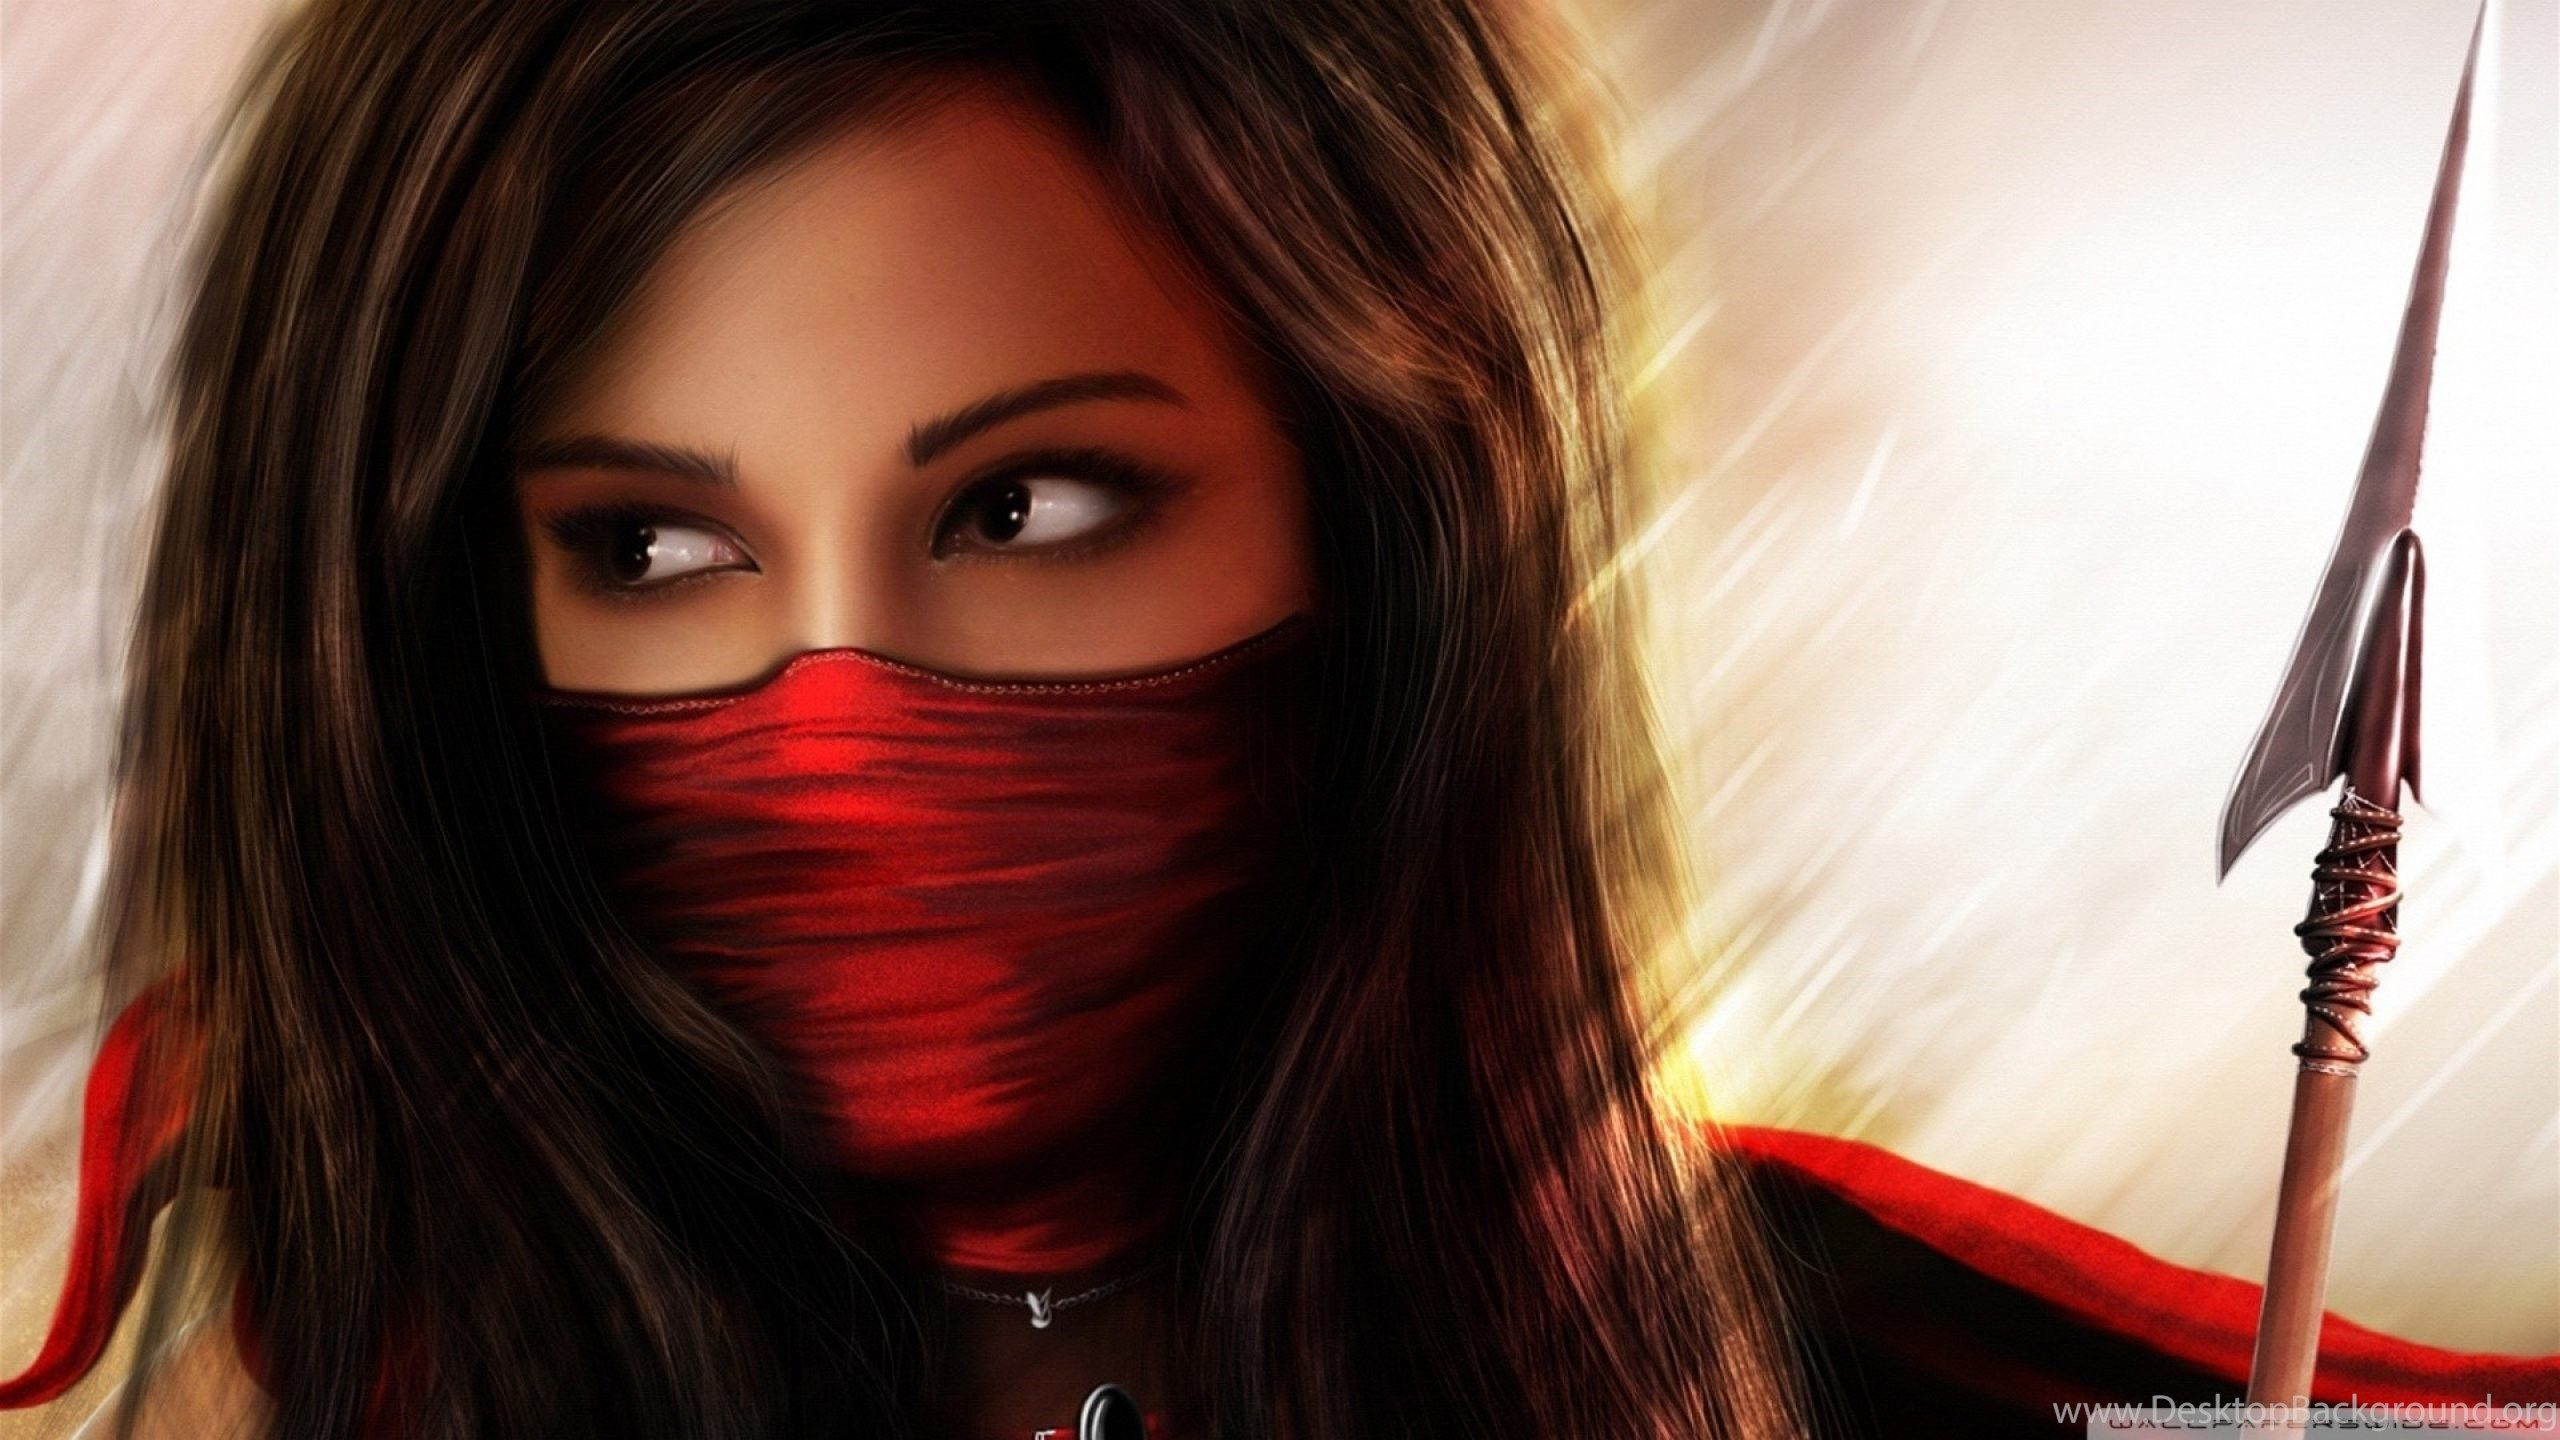 2560x1440 Ninja Girl Archives Wallpapers HD Free Wallpapers In All ... Desktop ...